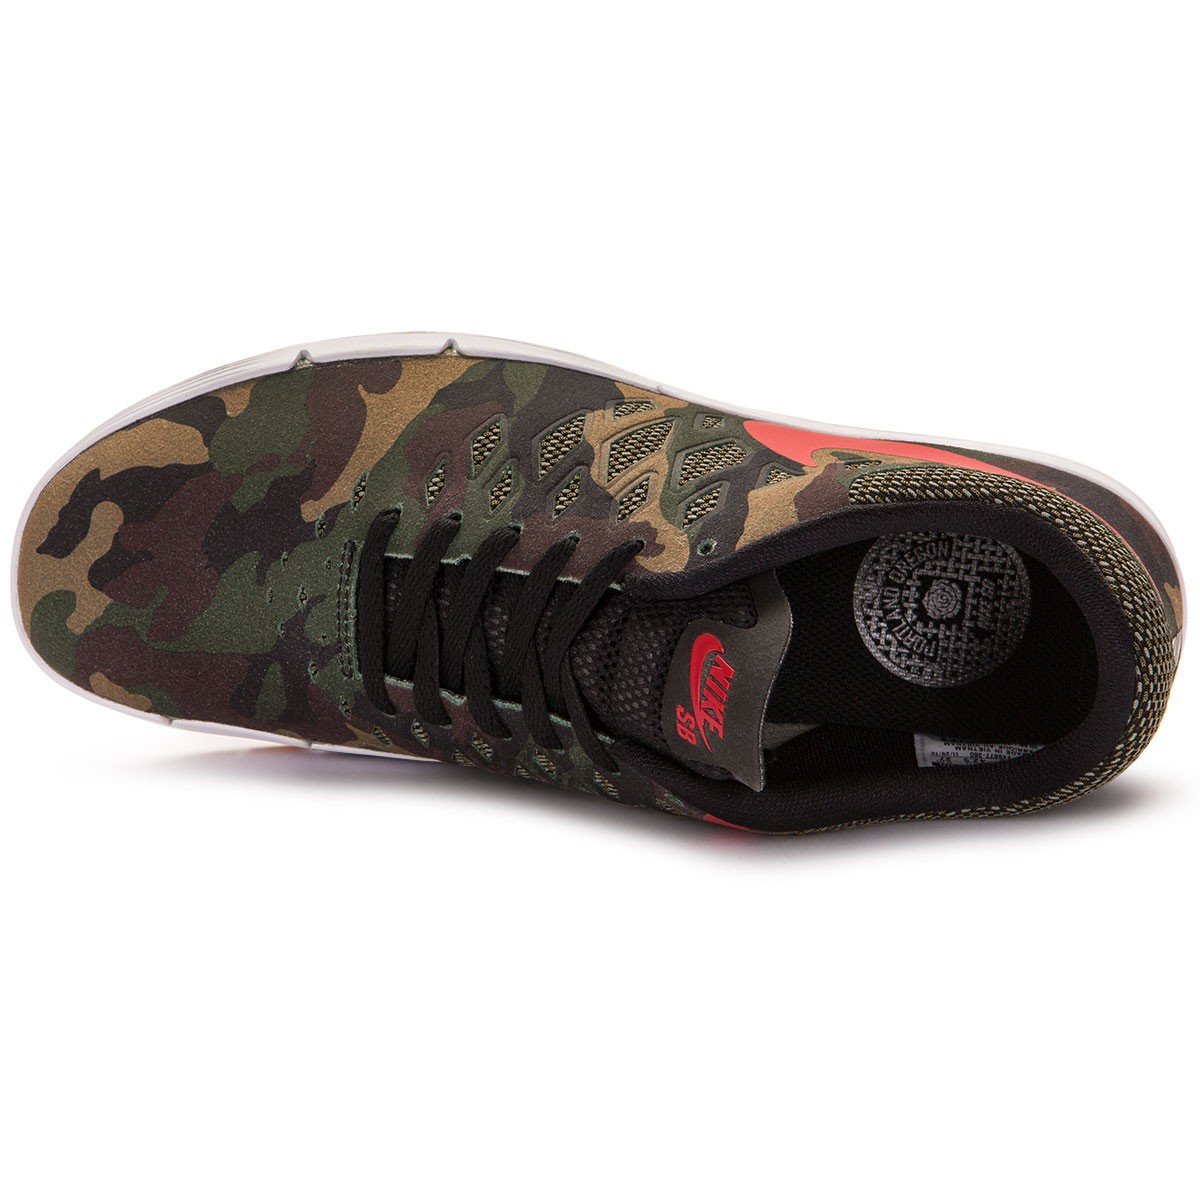 online store 6c050 a3709 Nike Free SB Rose City QS Shoes - Fortress GreenBlackRed - 14.0